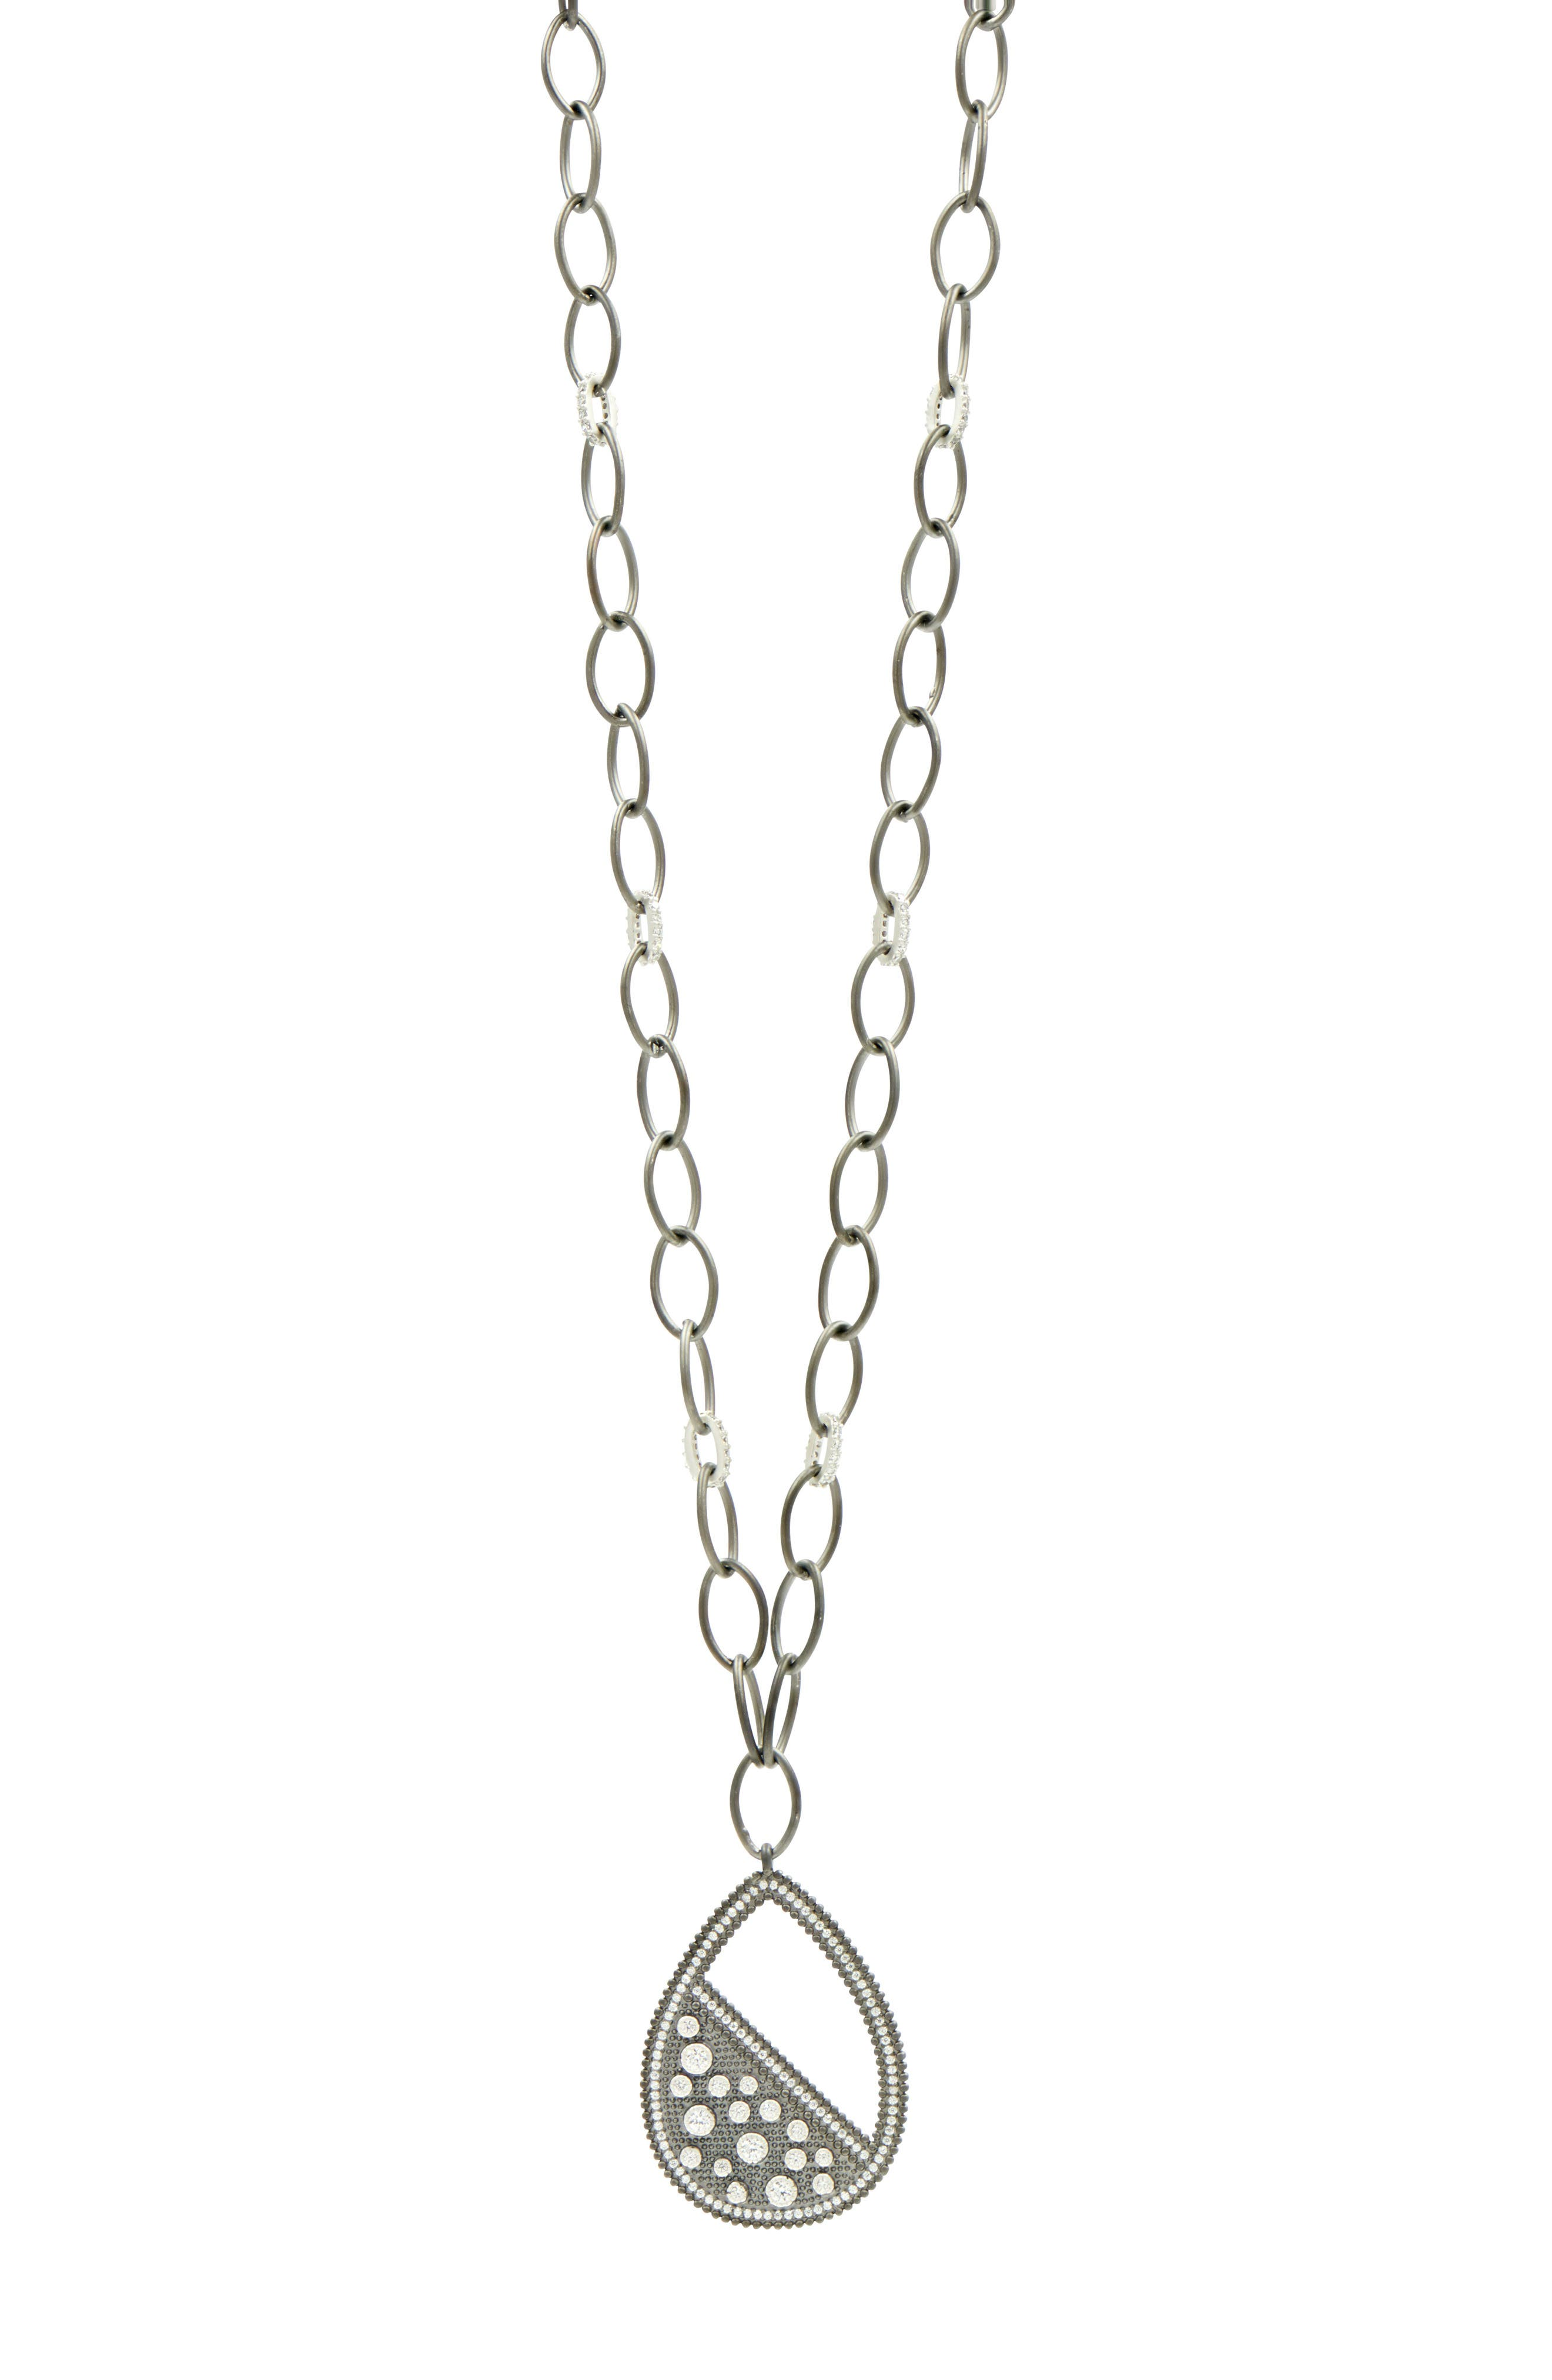 Industrial Finish Teardrop Necklace,                             Main thumbnail 1, color,                             040